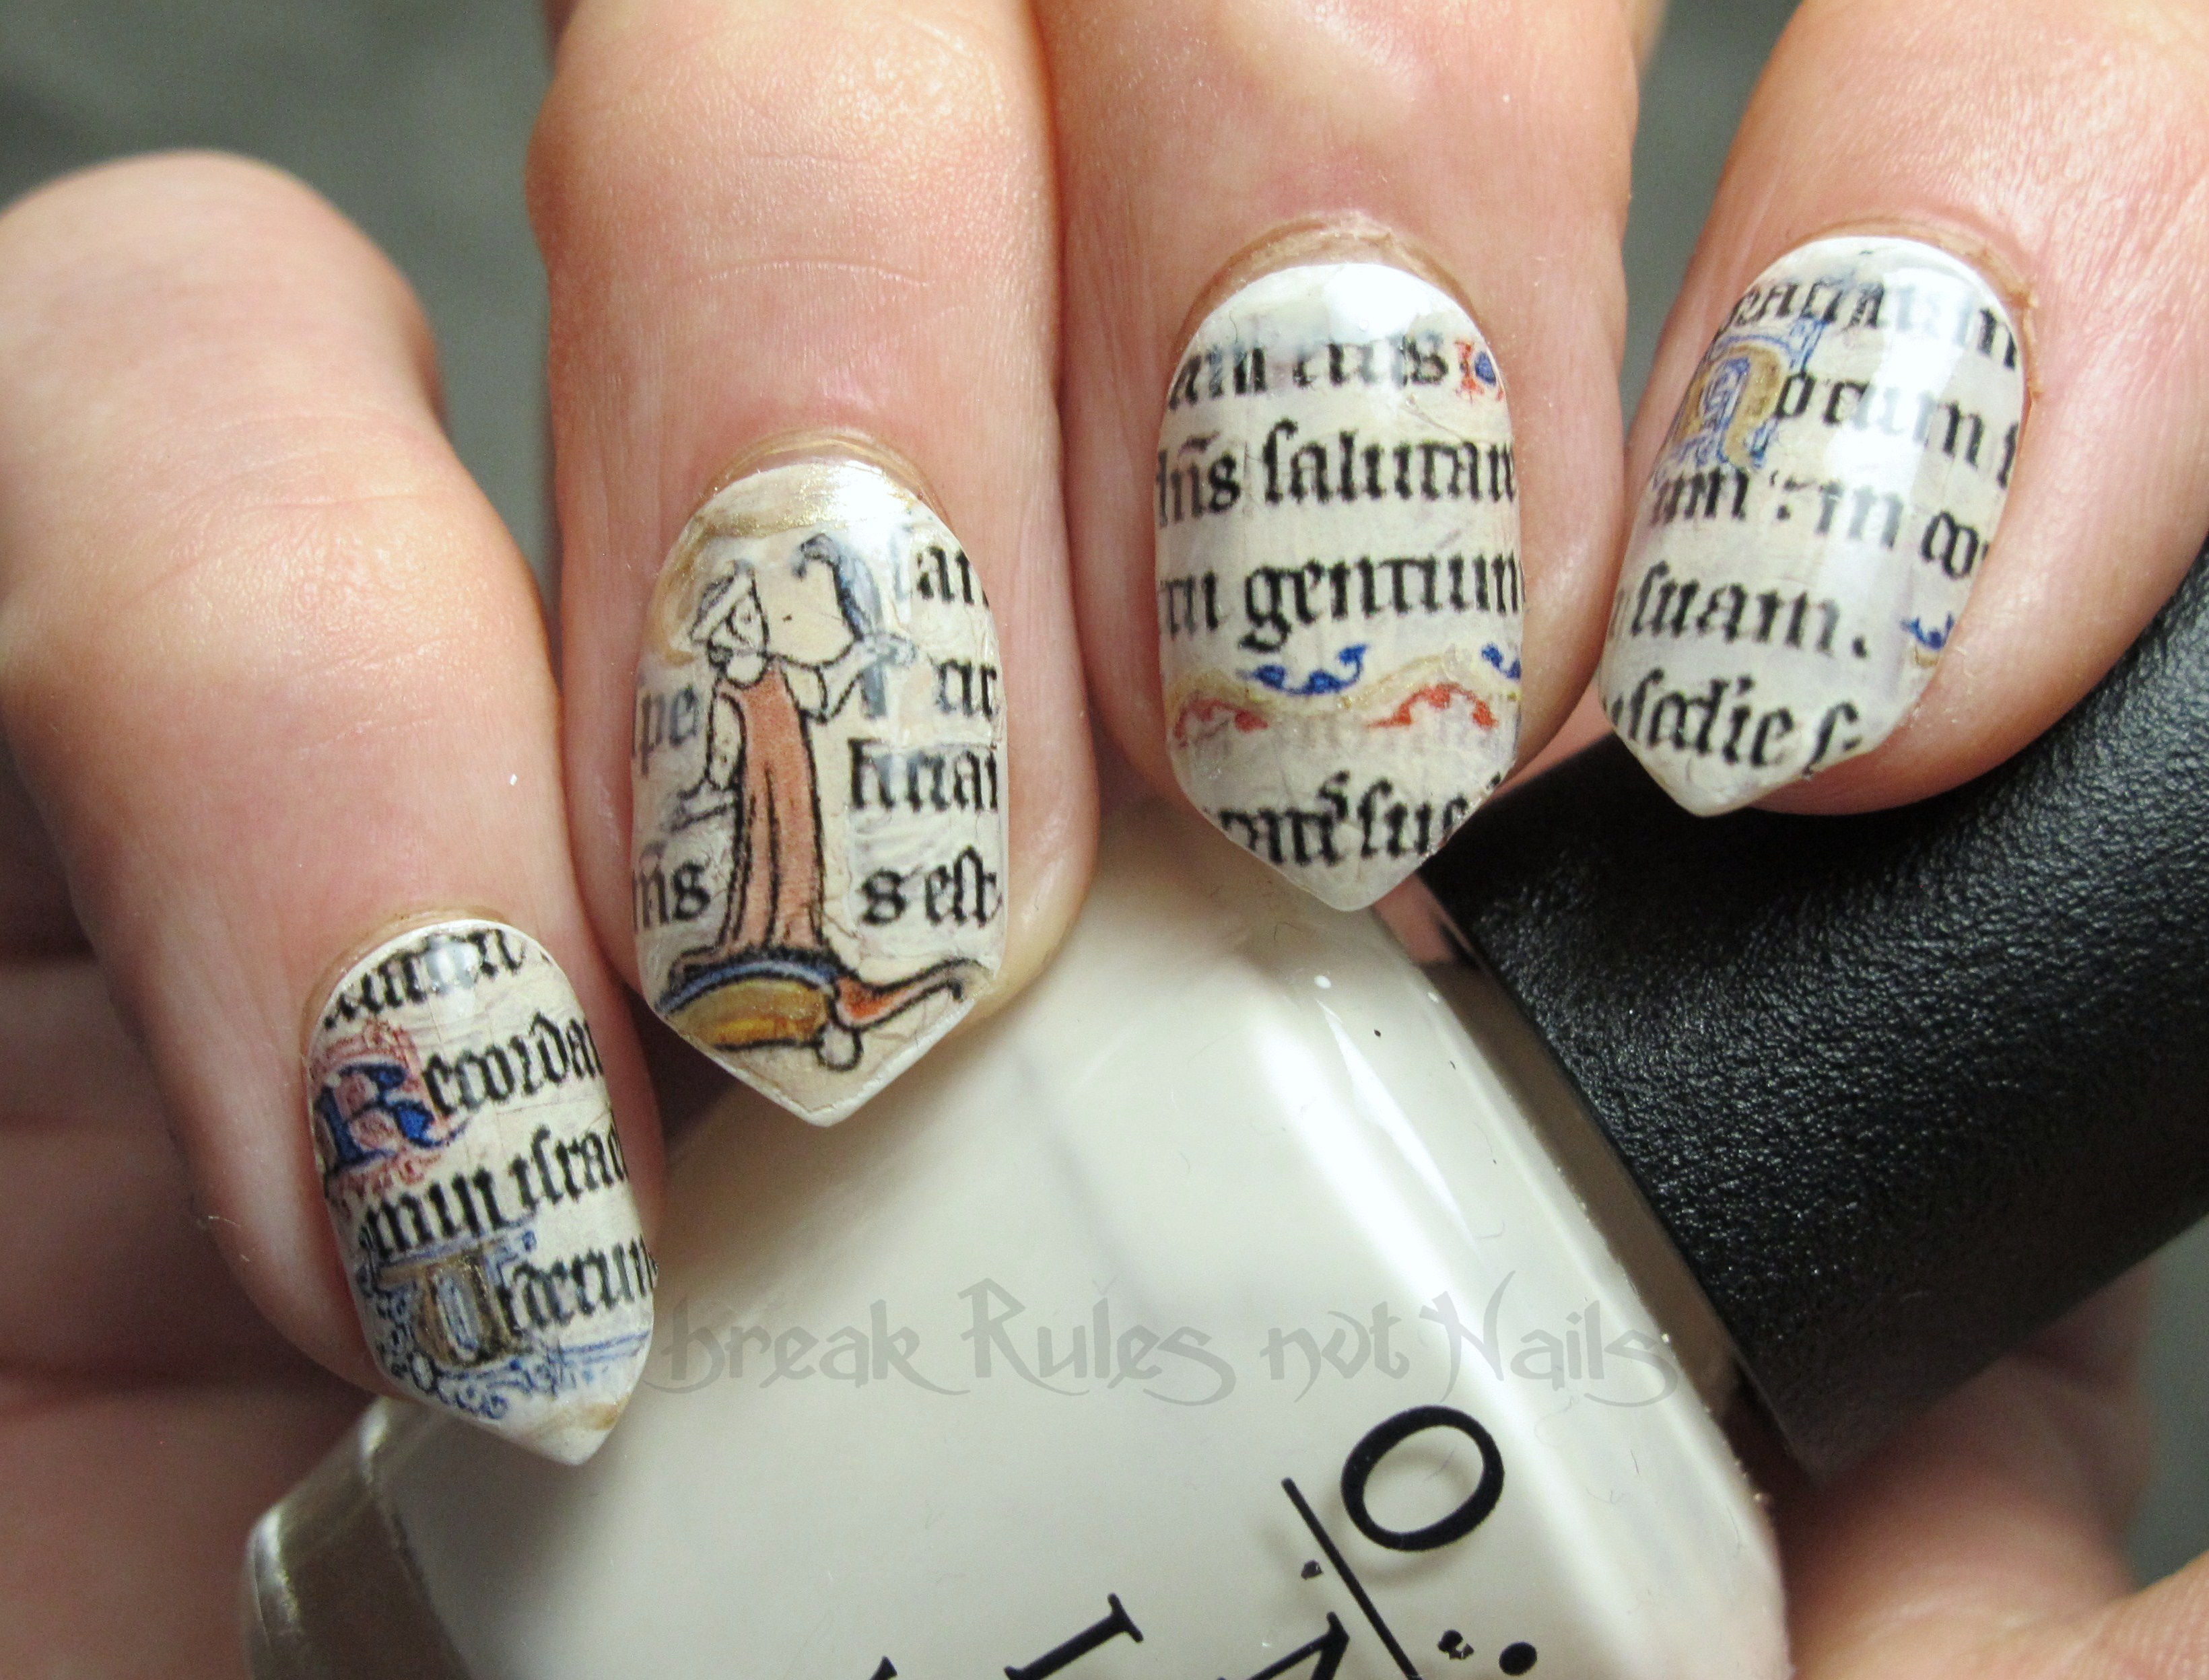 Manuscript nail art break rules not nails i have printed this image below onto clear waterslide decal paper cut out the sections that i liked and hey prestonuscript nails prinsesfo Images